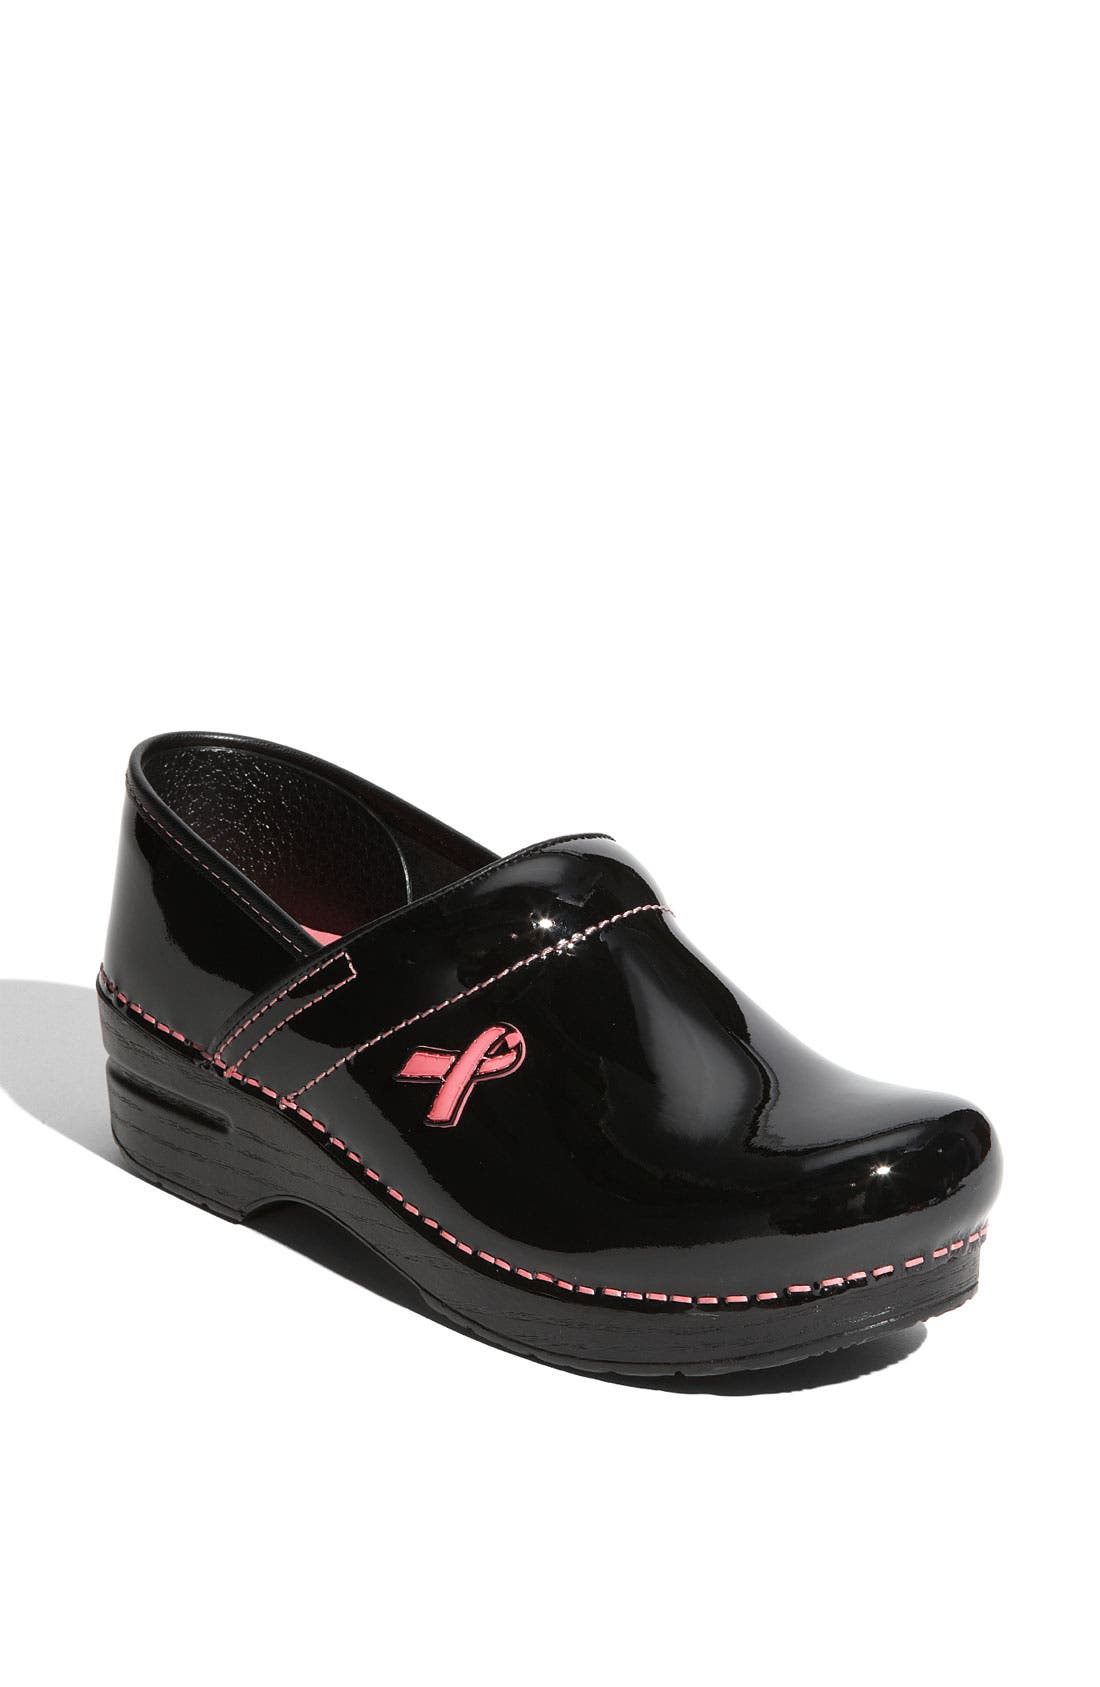 Alternate Image 1 Selected - Dansko 'Professional - Pink Ribbon' Clog